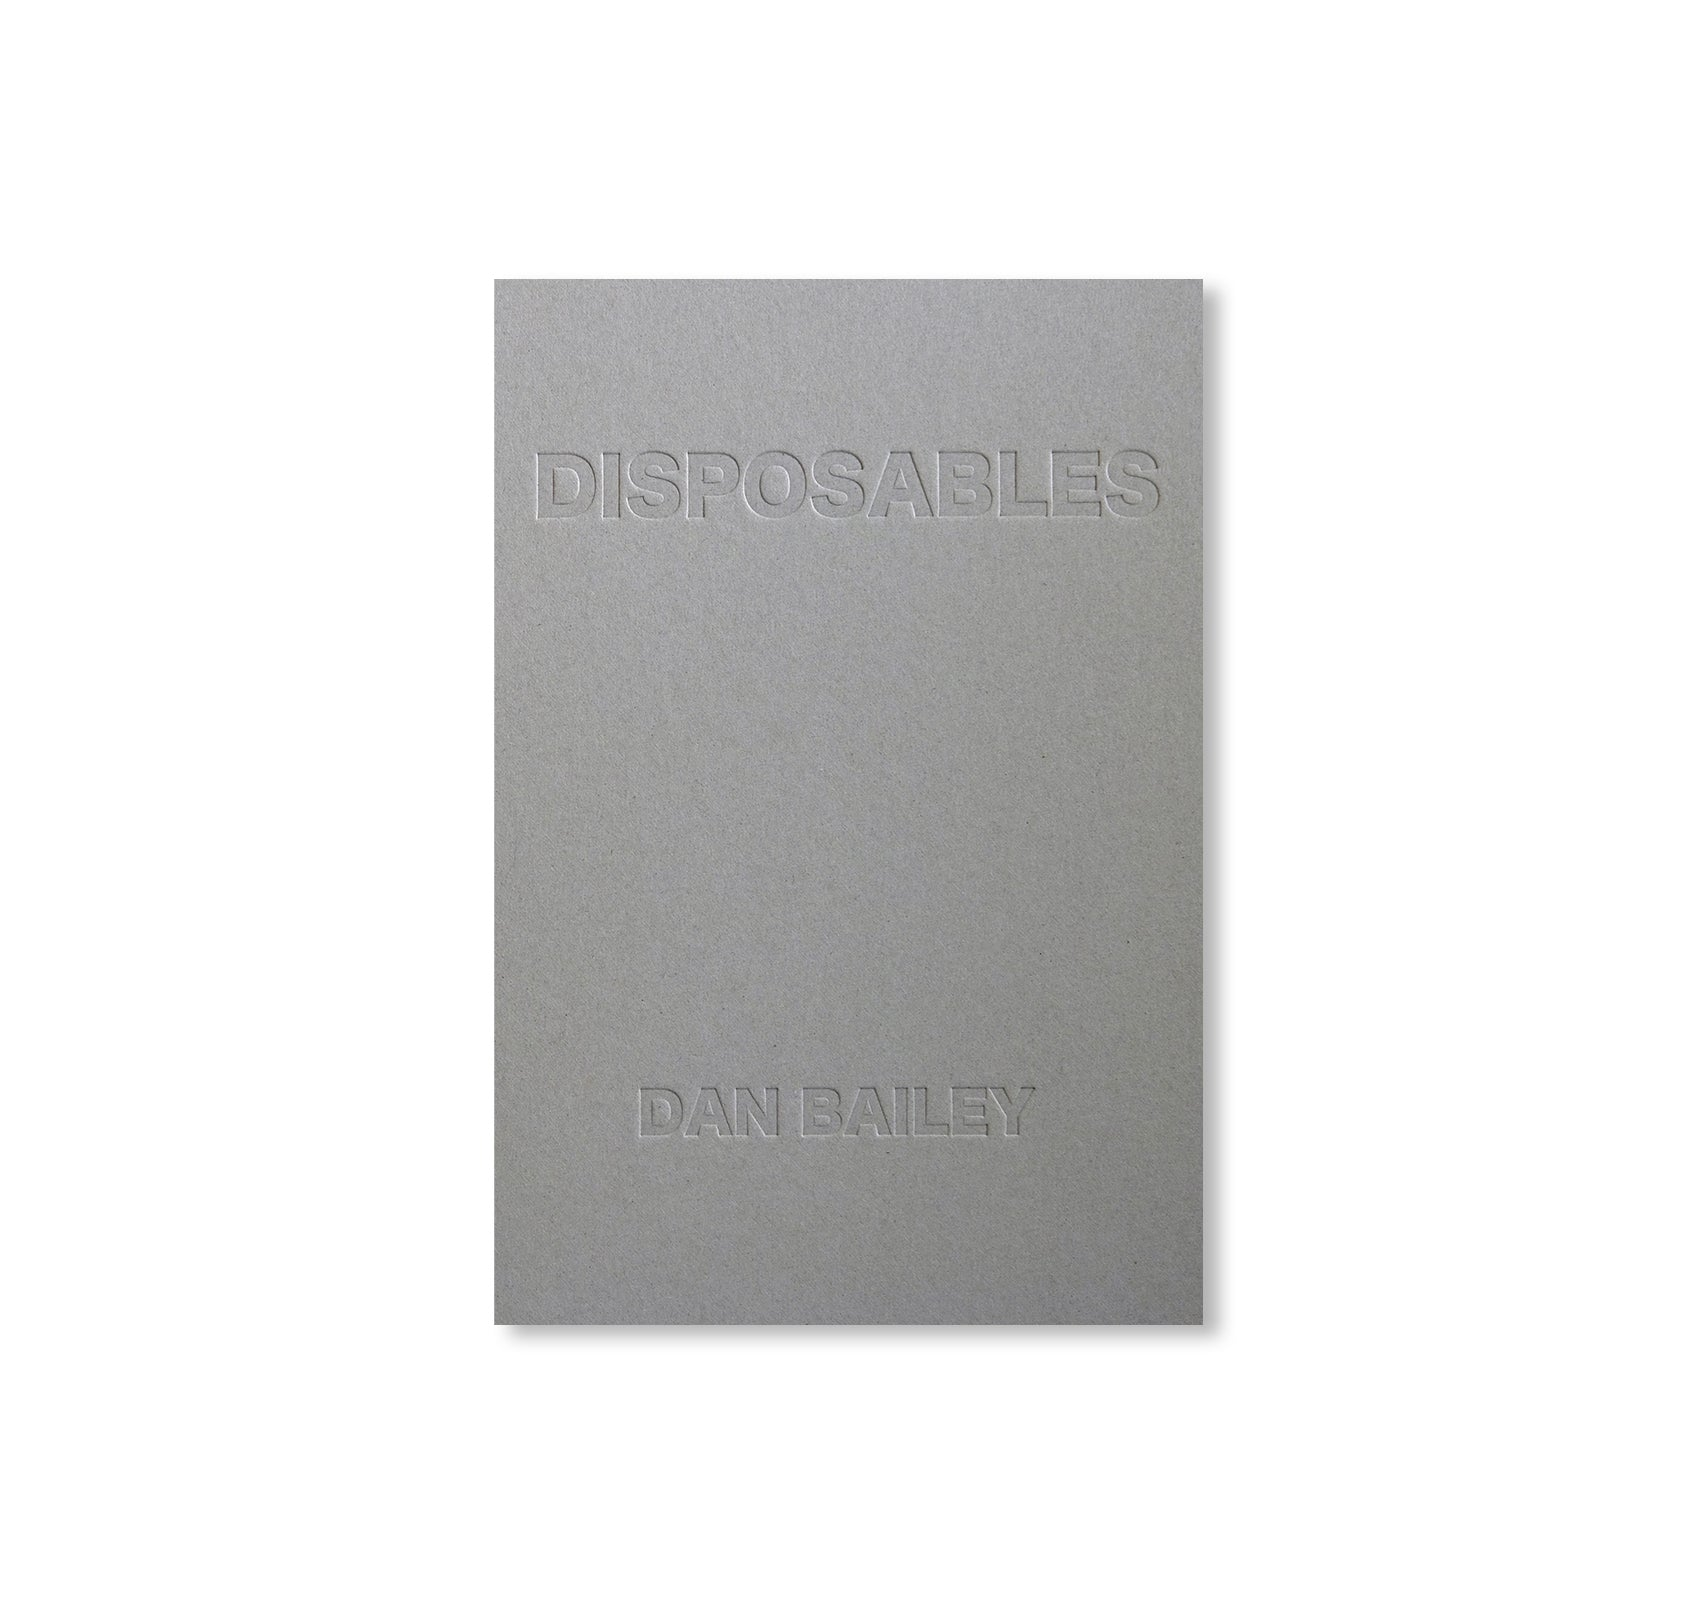 DISPOSABLES by Dan Bailey